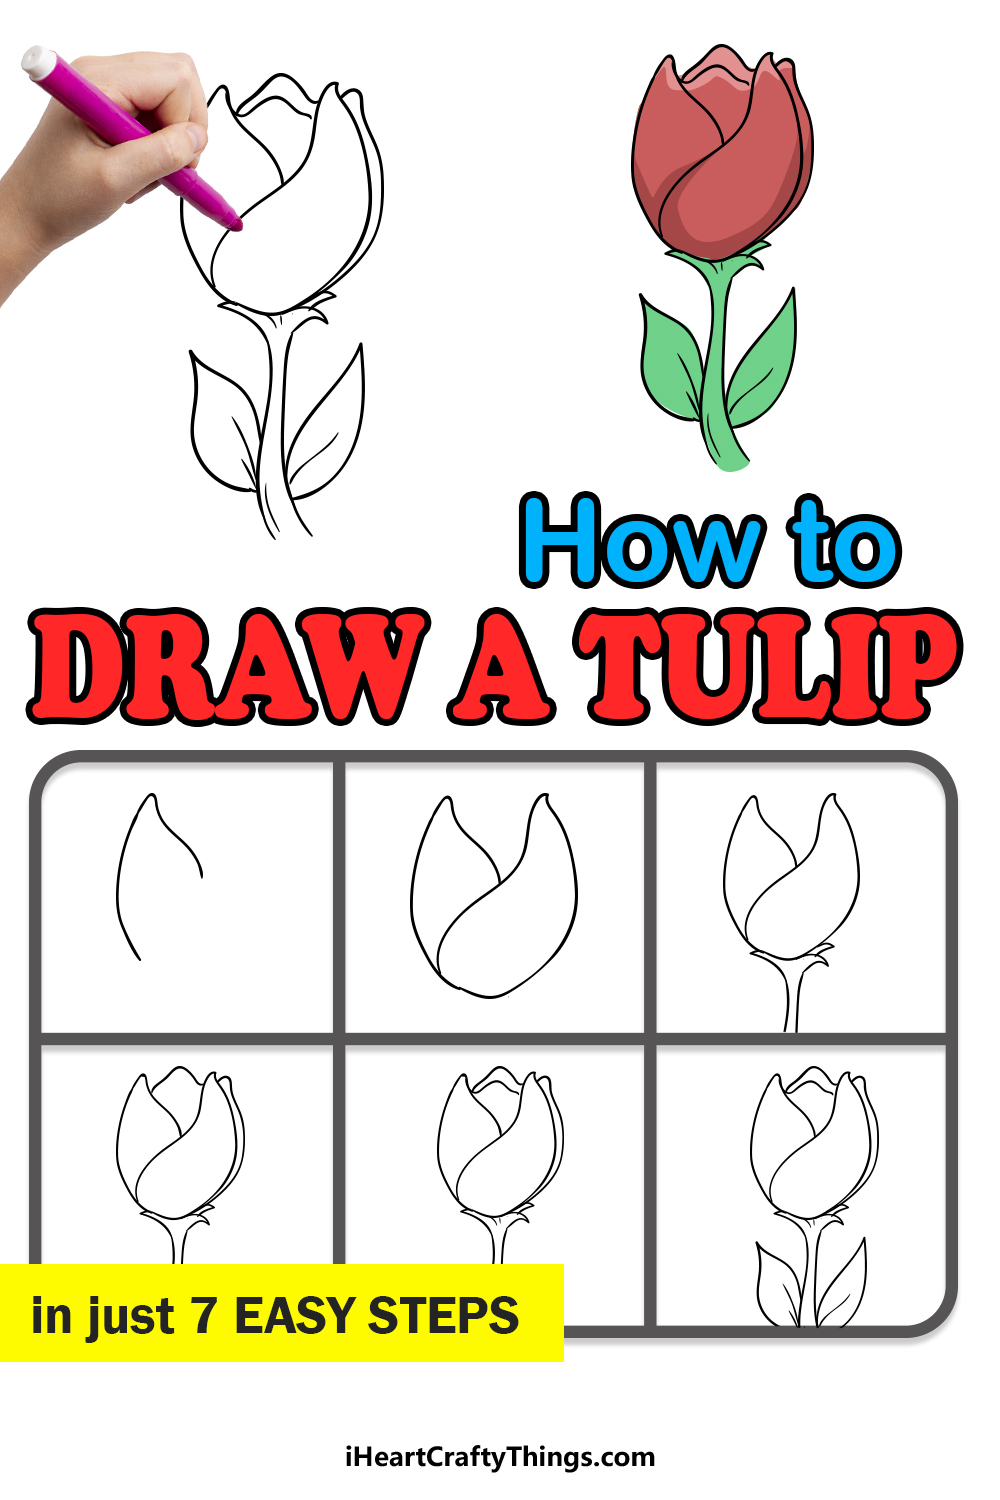 how to draw a tulip in 7 easy steps